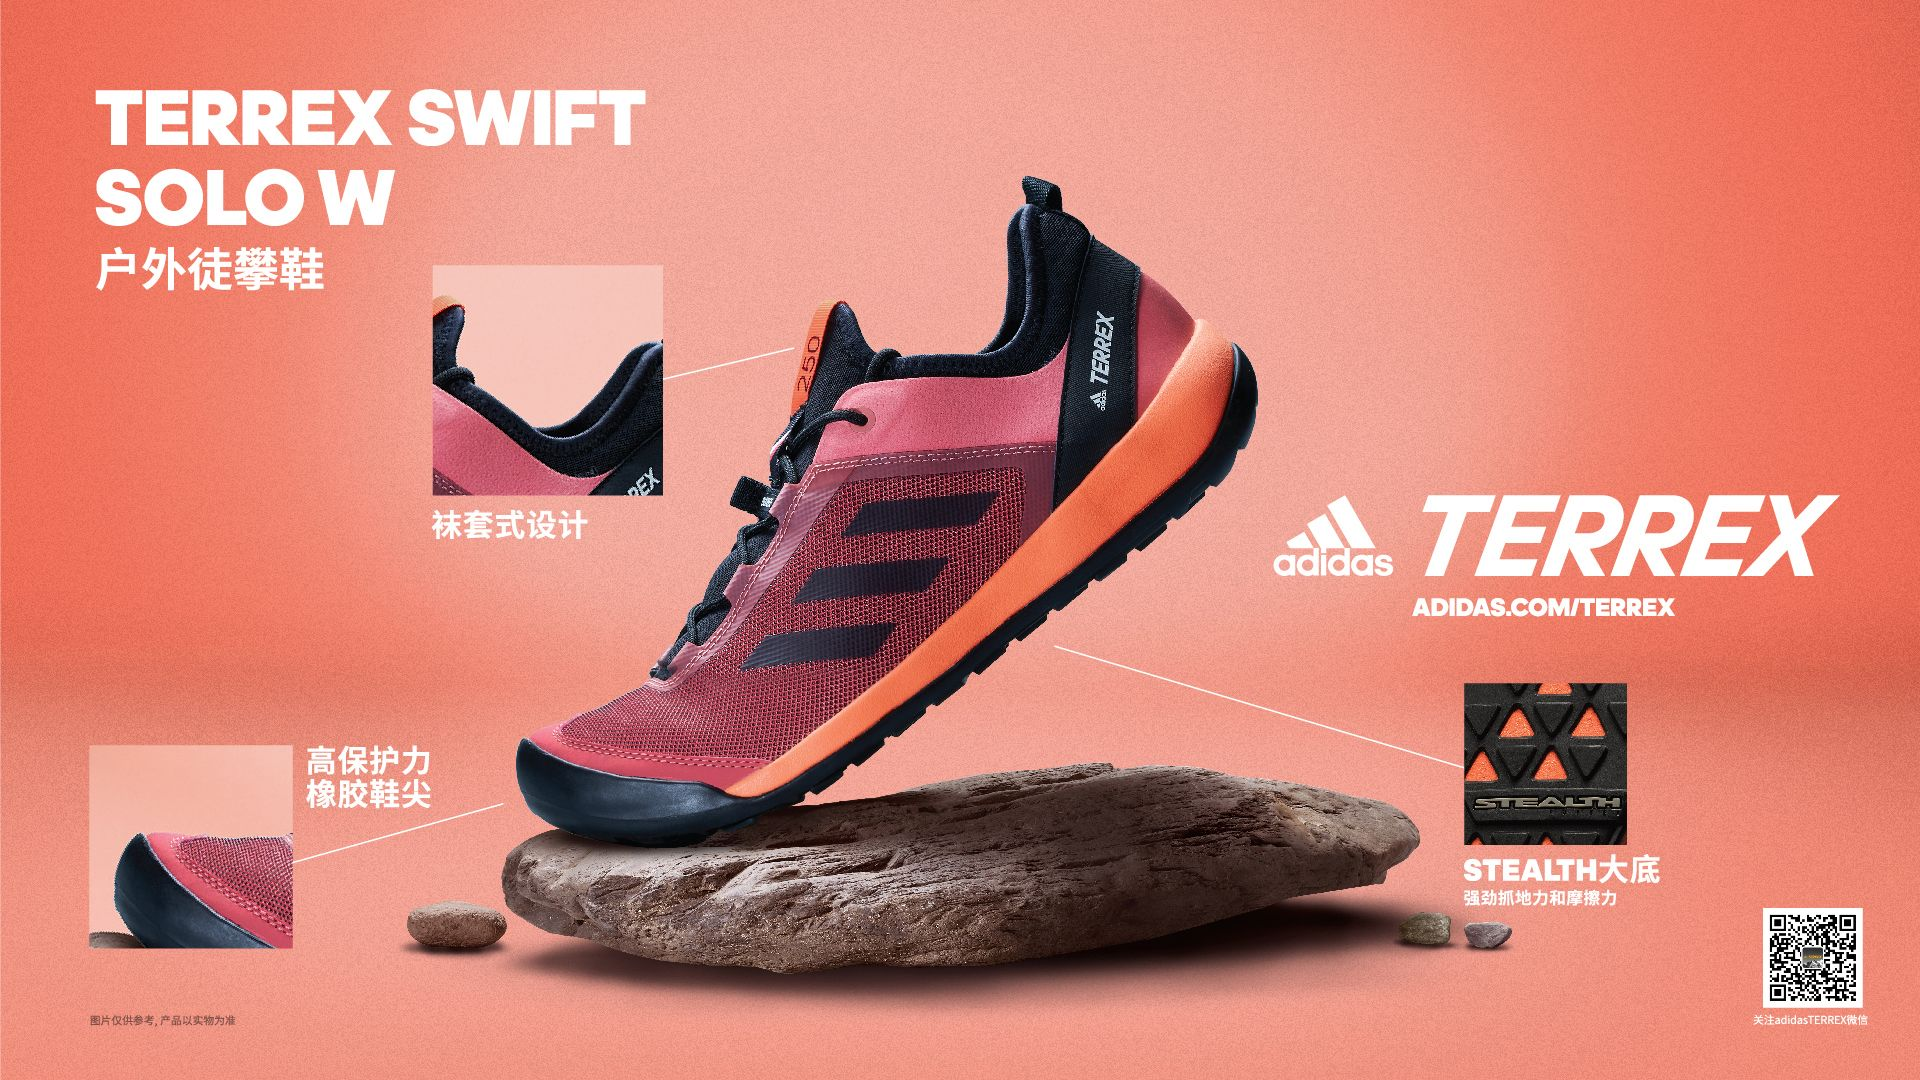 Pin By Name Name On Adidas Terrex 2017 Adverts Shoes Ads Shoes Photography Shoe Print